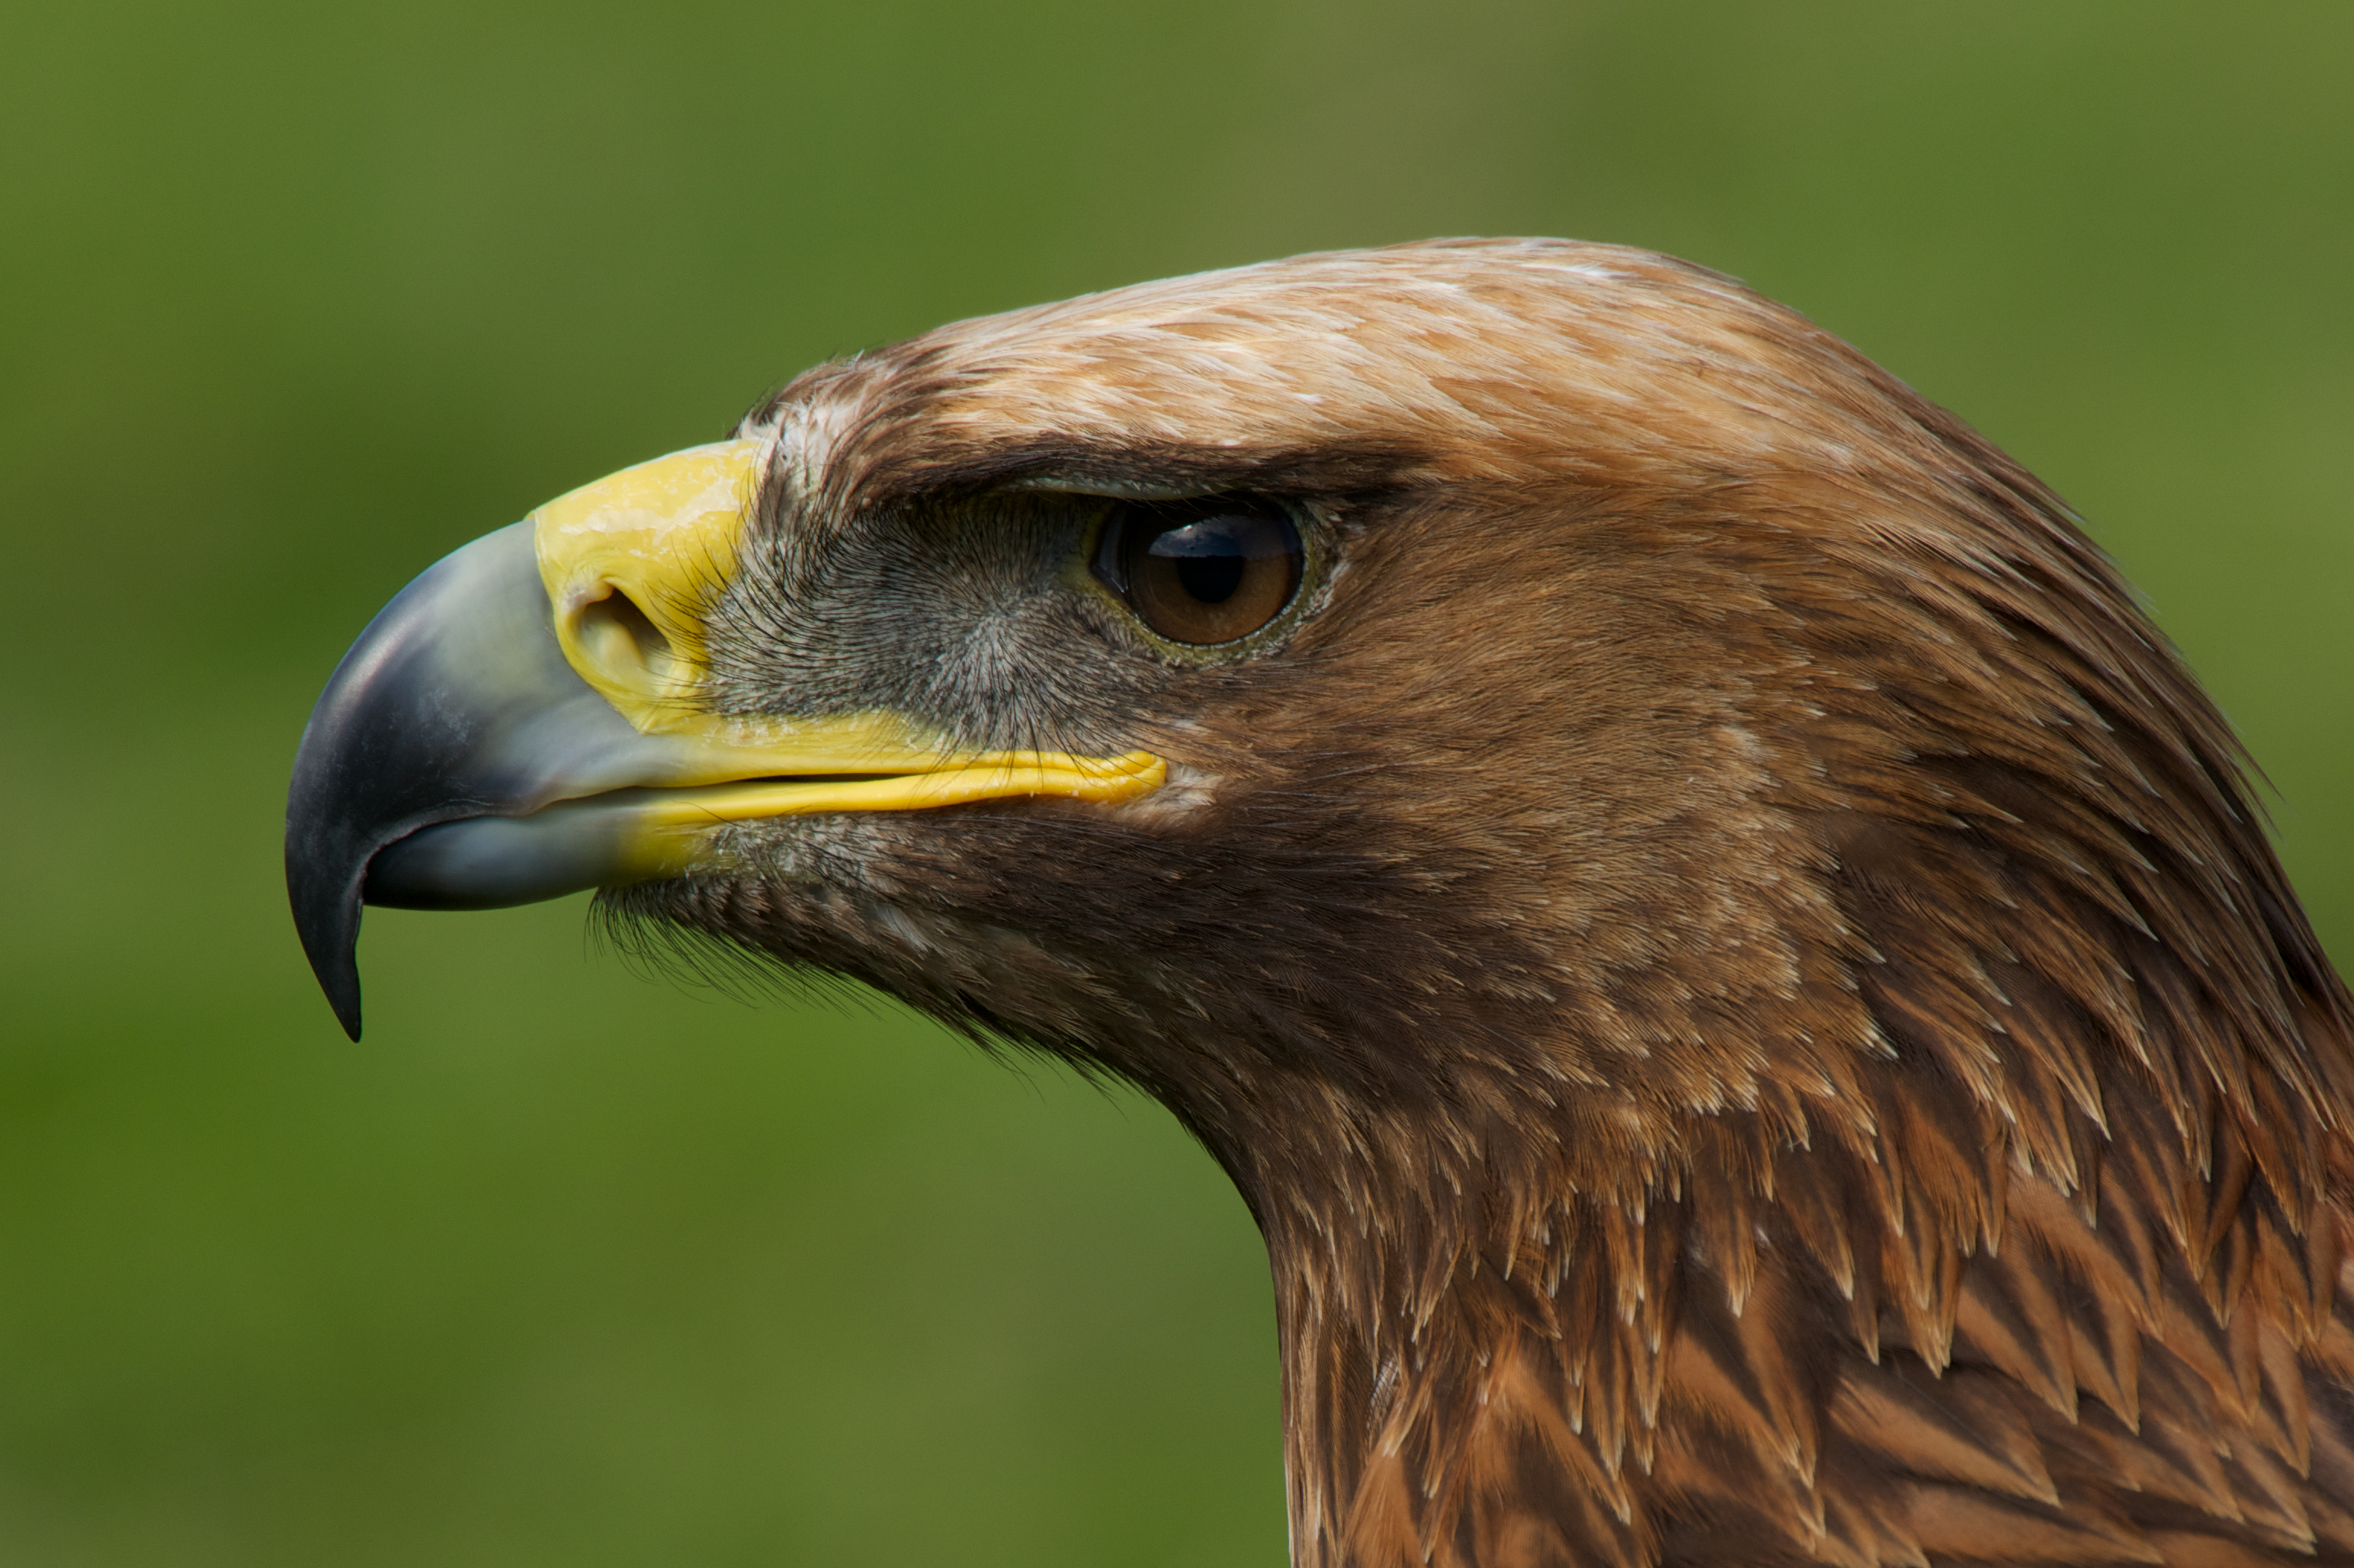 Close-up of golden eagle head in profile | Nick Dale